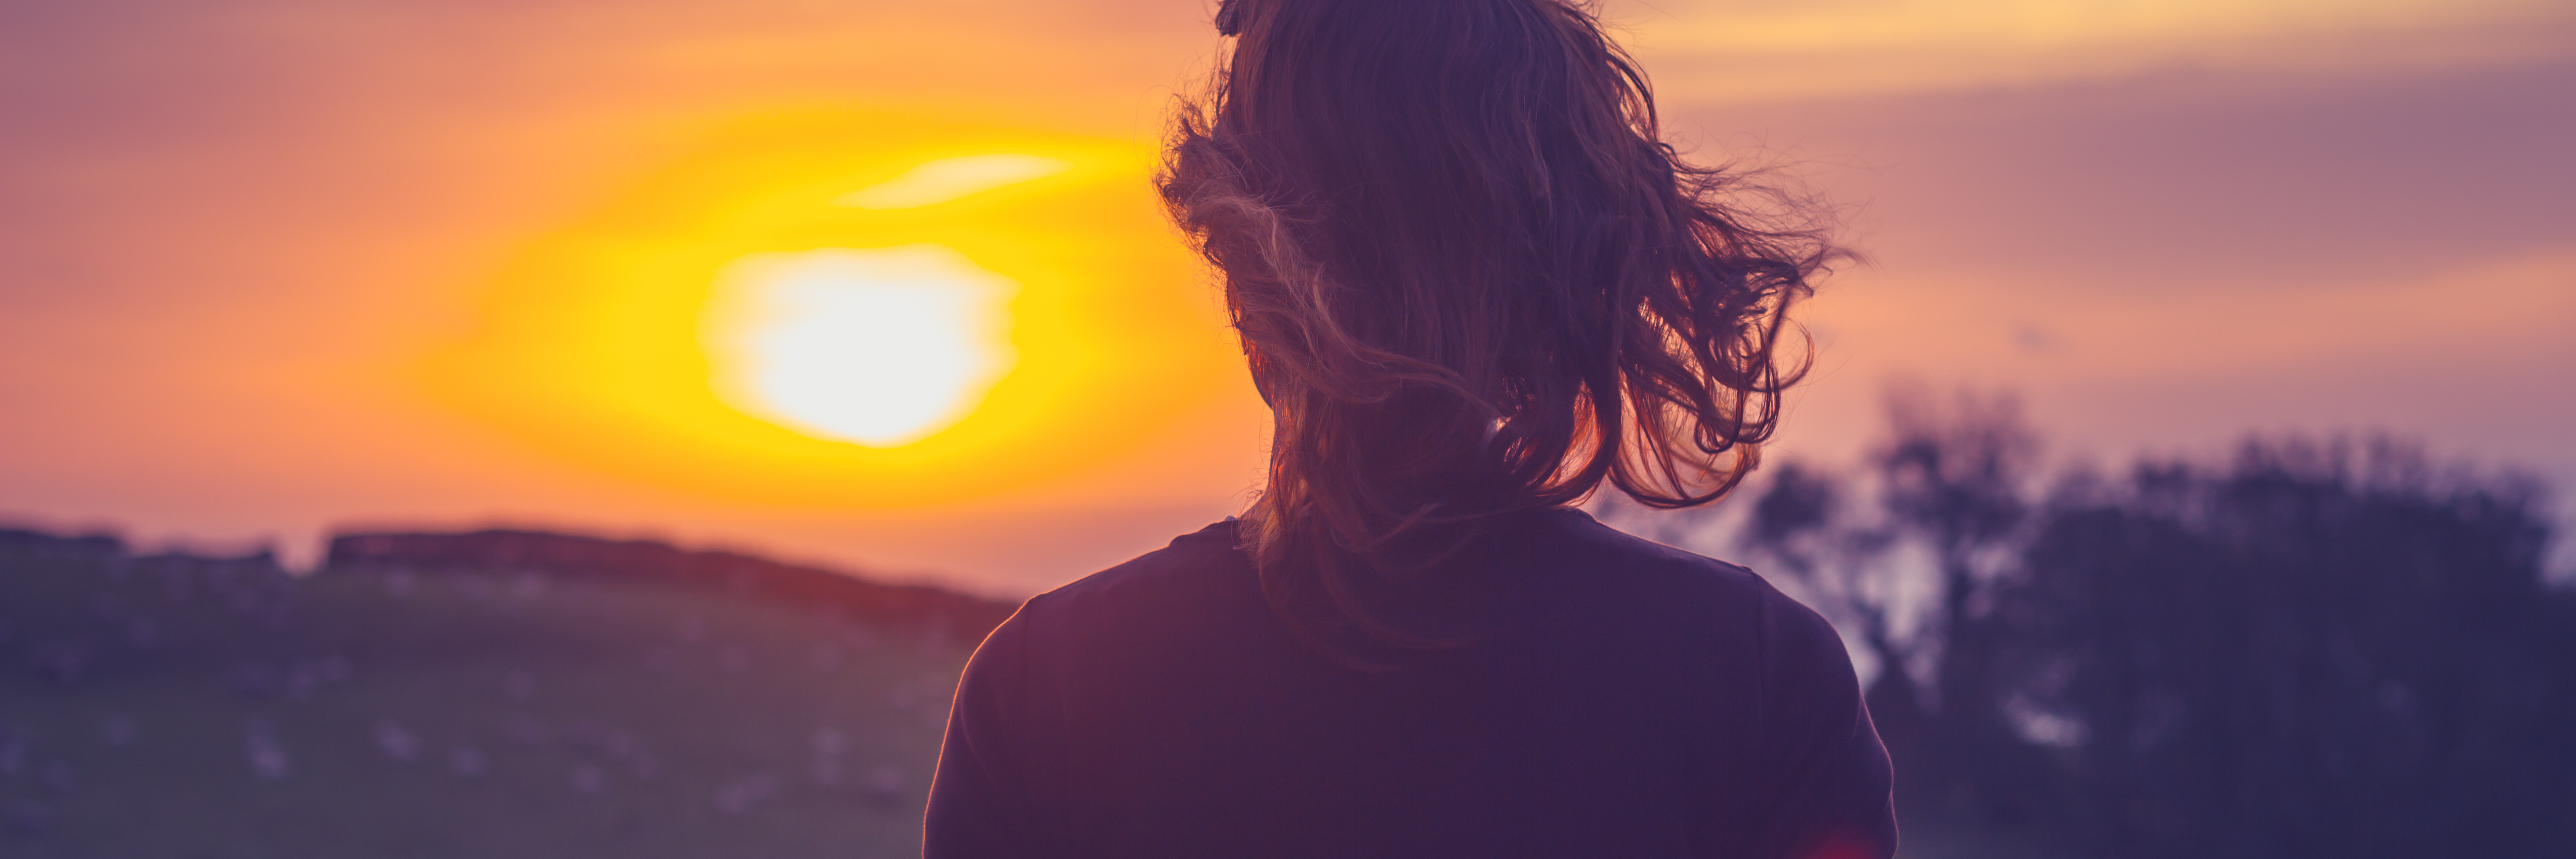 young woman watching sunset from balcony